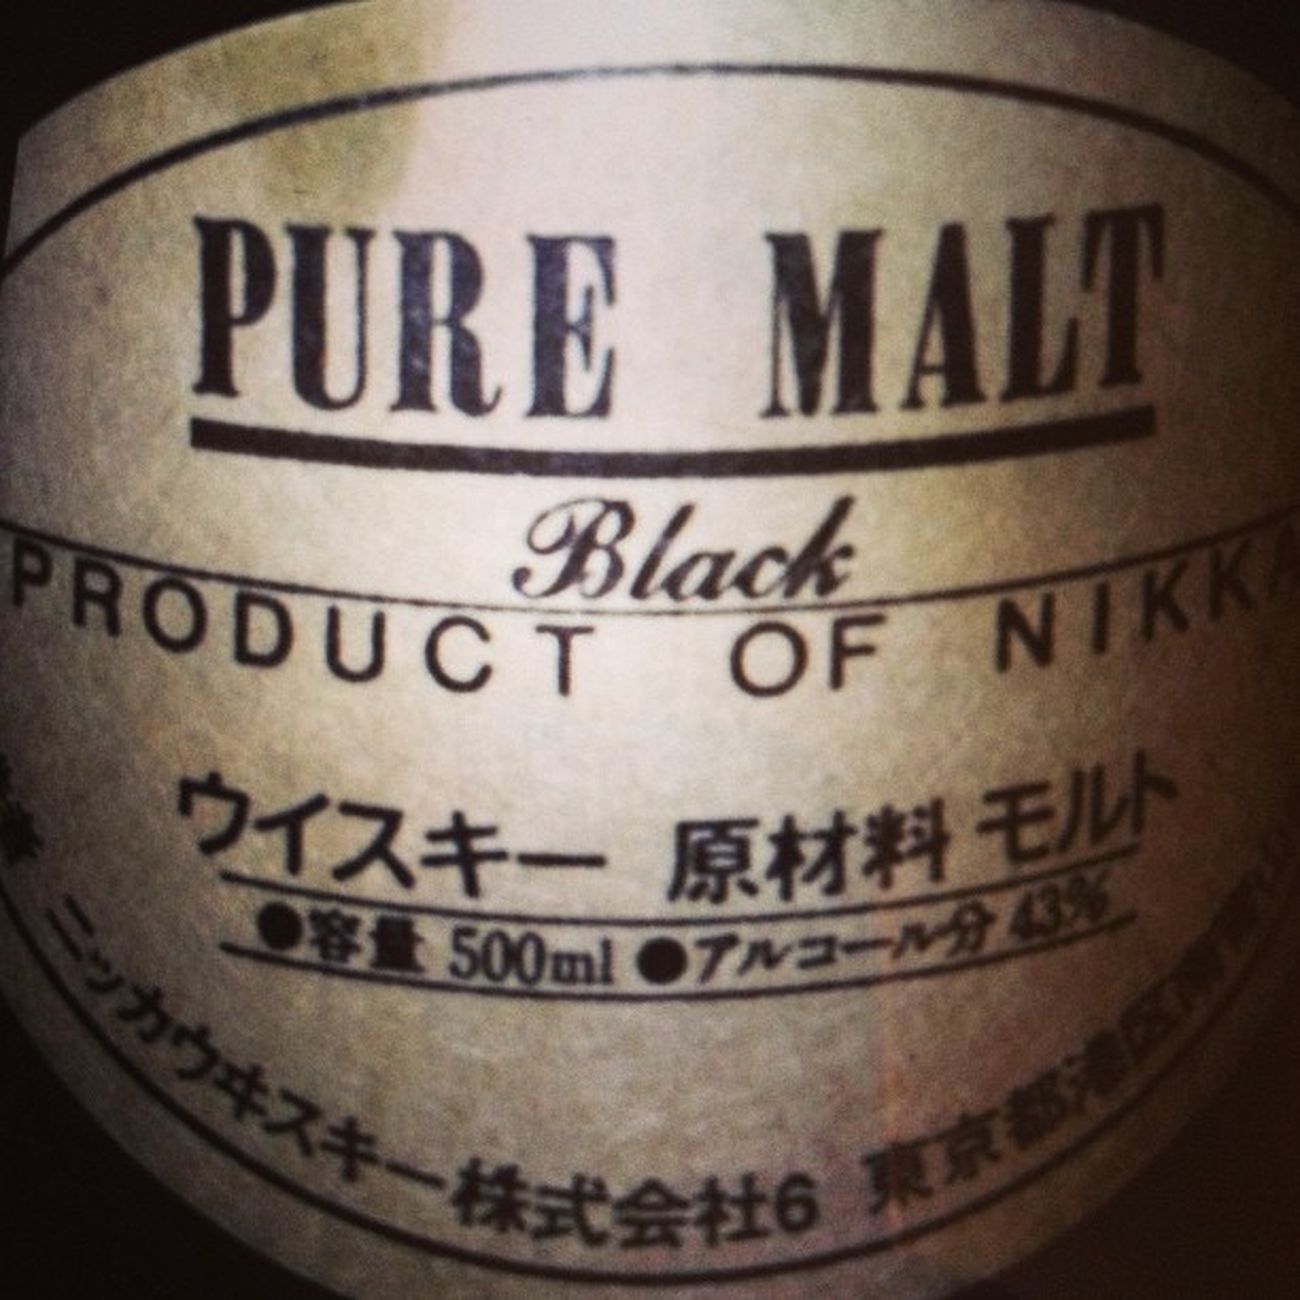 Puremalt Nikka Black Japan